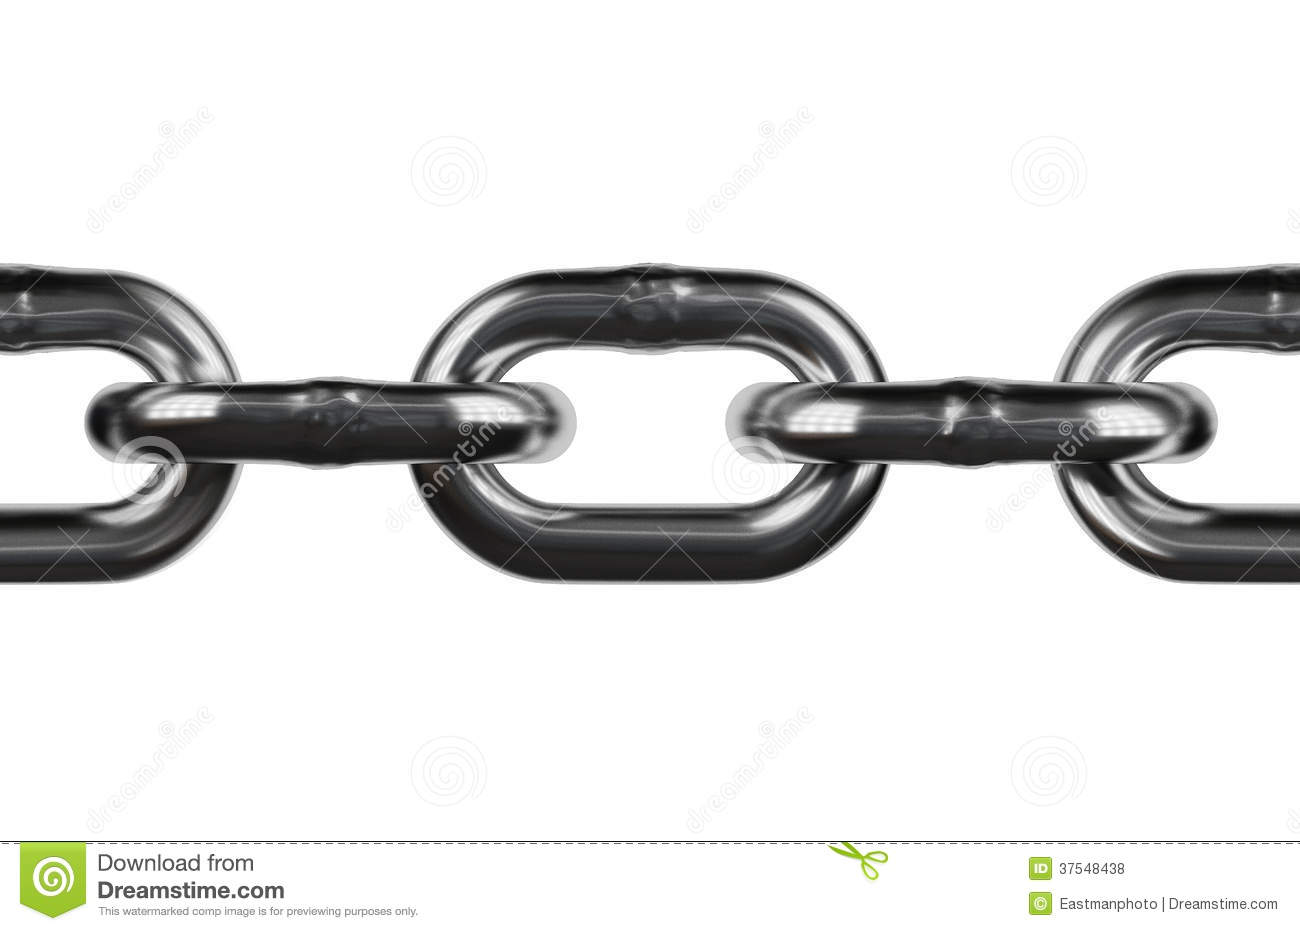 Royalty Free Stock Photos Seamless Chain Link Seanless Links Isolated White Background Image37548438 besides Product 64 additionally Pfeil links rechts clipart in addition Kmart Australia moreover Skytrac 6036. on clipart chain links 4